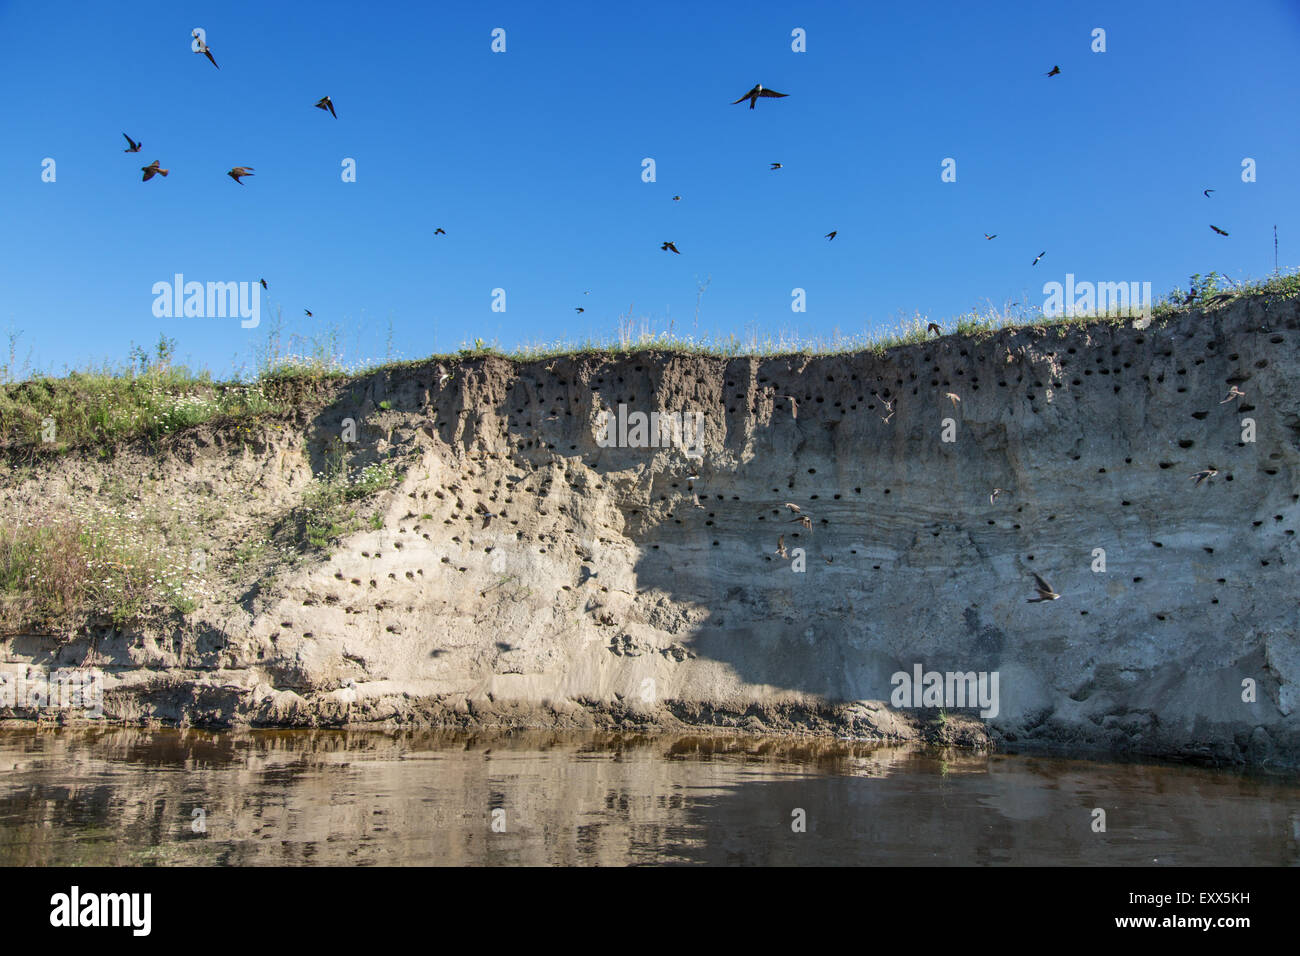 River-bank with breeding grounds of sand martins. - Stock Image